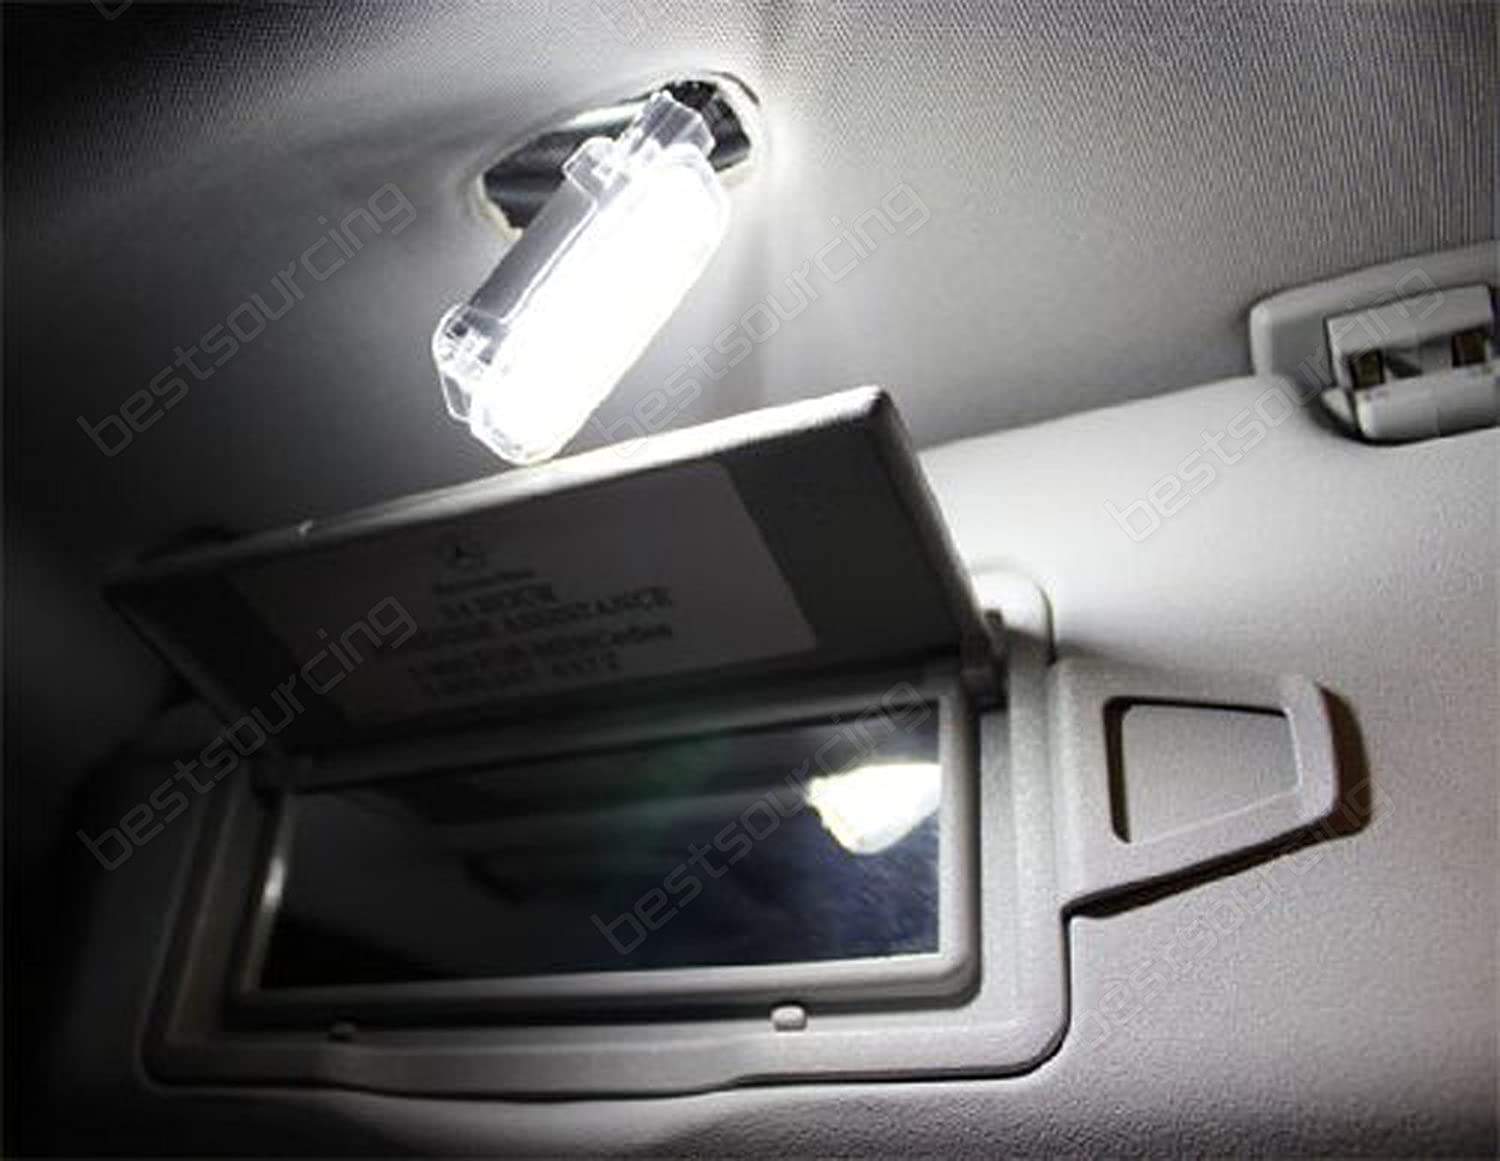 A/&R A2218200401 LED Footwell Luggage Boot Visor Mirror Light Lamp